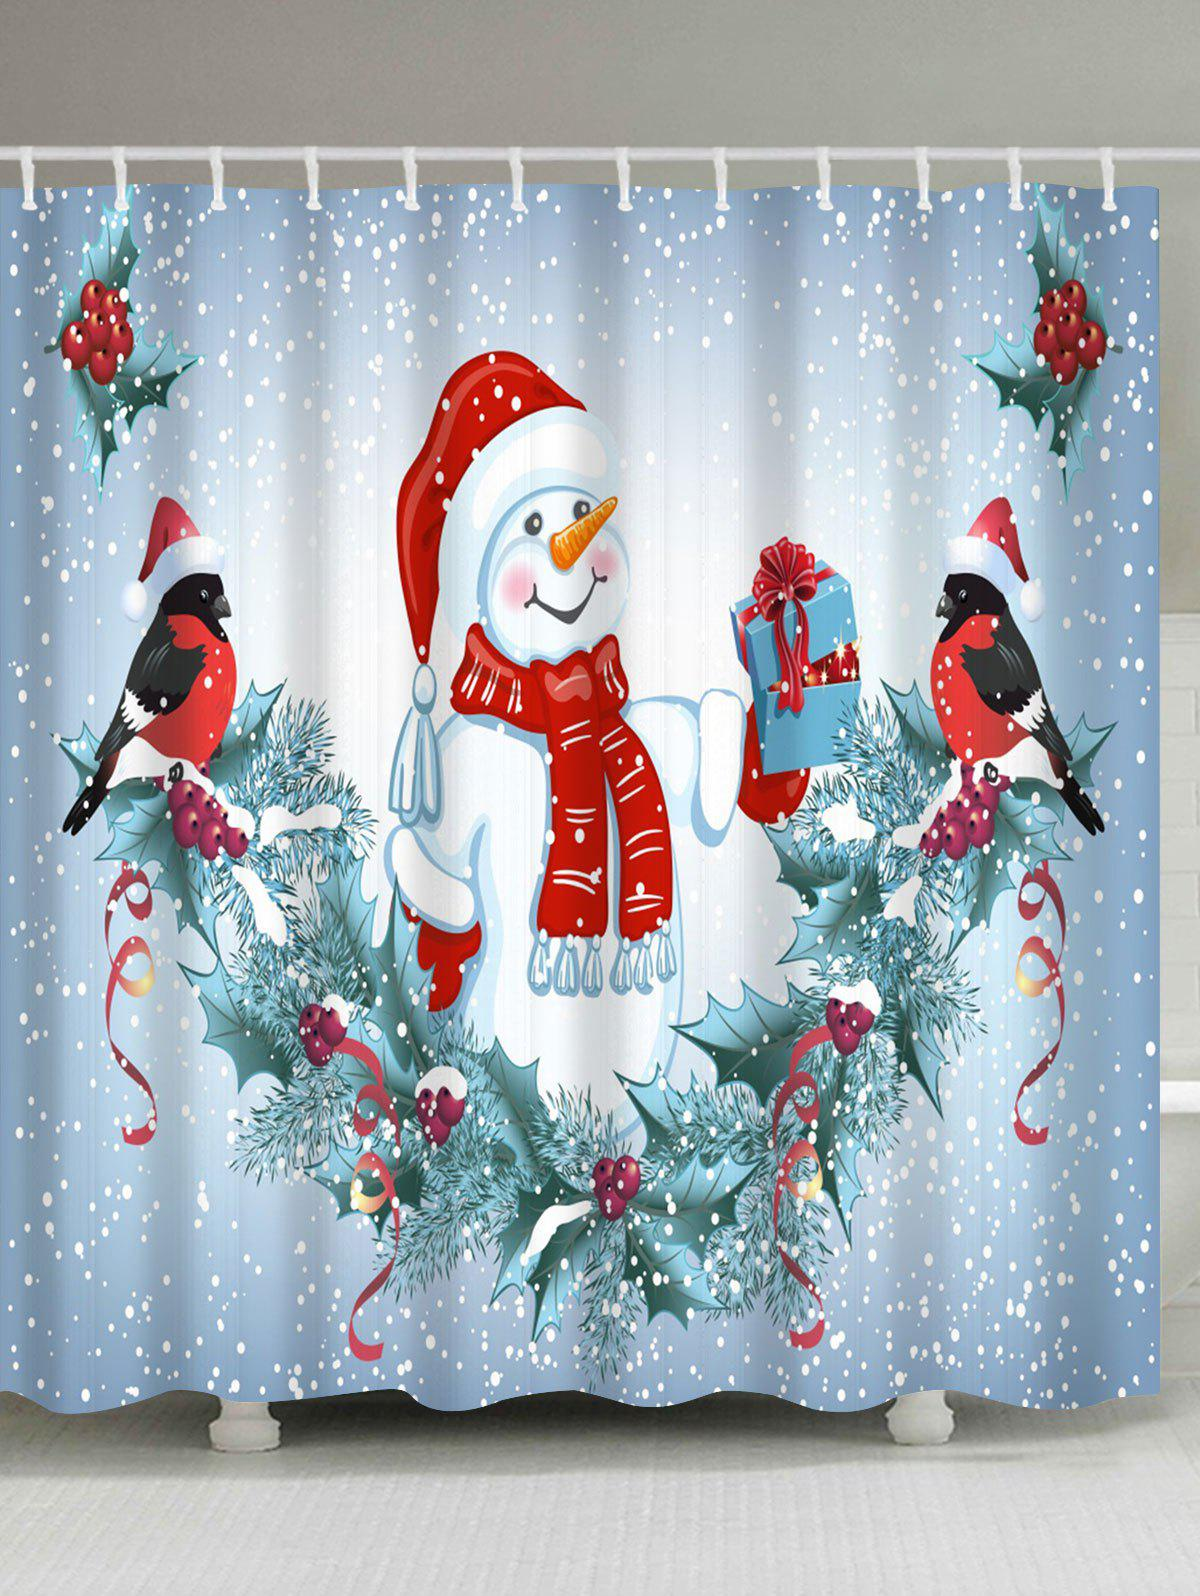 Christmas Snowman Birds Print Waterproof Bathroom Shower CurtainHOME<br><br>Size: W71 INCH * L79 INCH; Color: COLORMIX; Products Type: Shower Curtains; Materials: Polyester; Pattern: Snowman; Style: Festival; Number of Hook Holes: W59 inch*L71 inch: 10; W71 inch*L71 inch: 12; W71 inch*L79 inch: 12; Package Contents: 1 x Shower Curtain 1 x Hooks (Set);